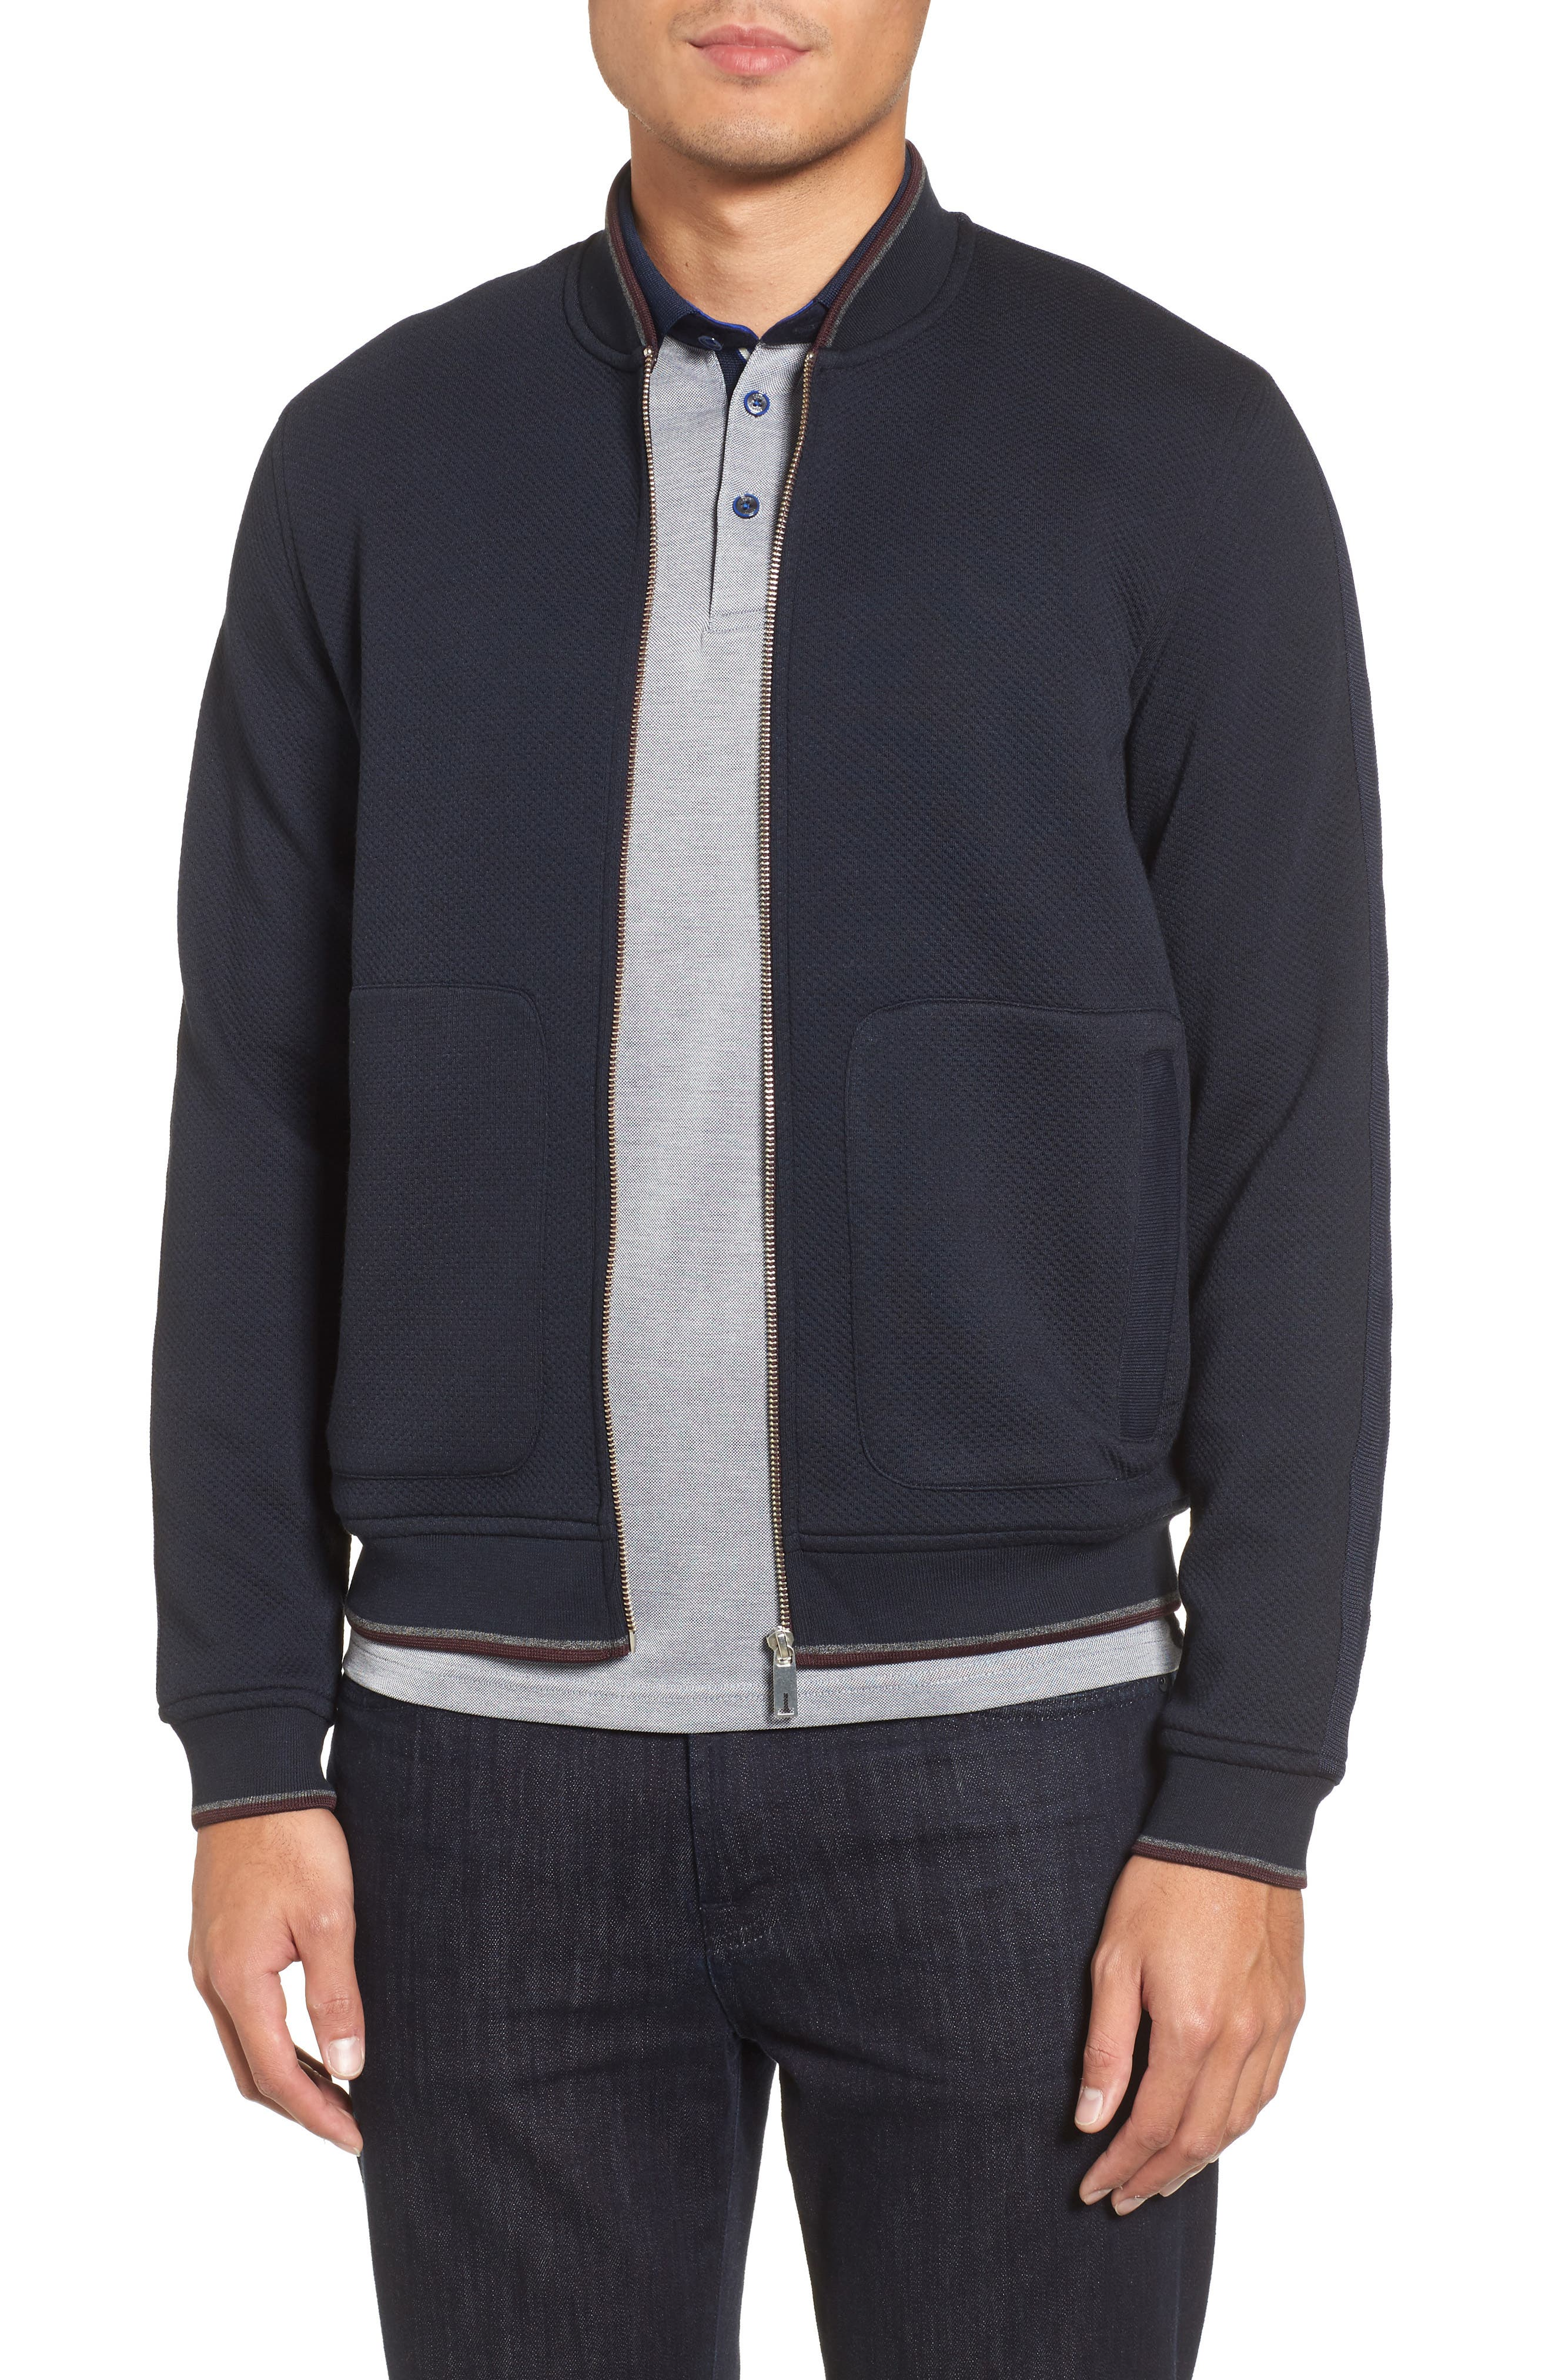 Whatts Trim Fit Textured Bomber Jacket,                             Main thumbnail 1, color,                             Navy